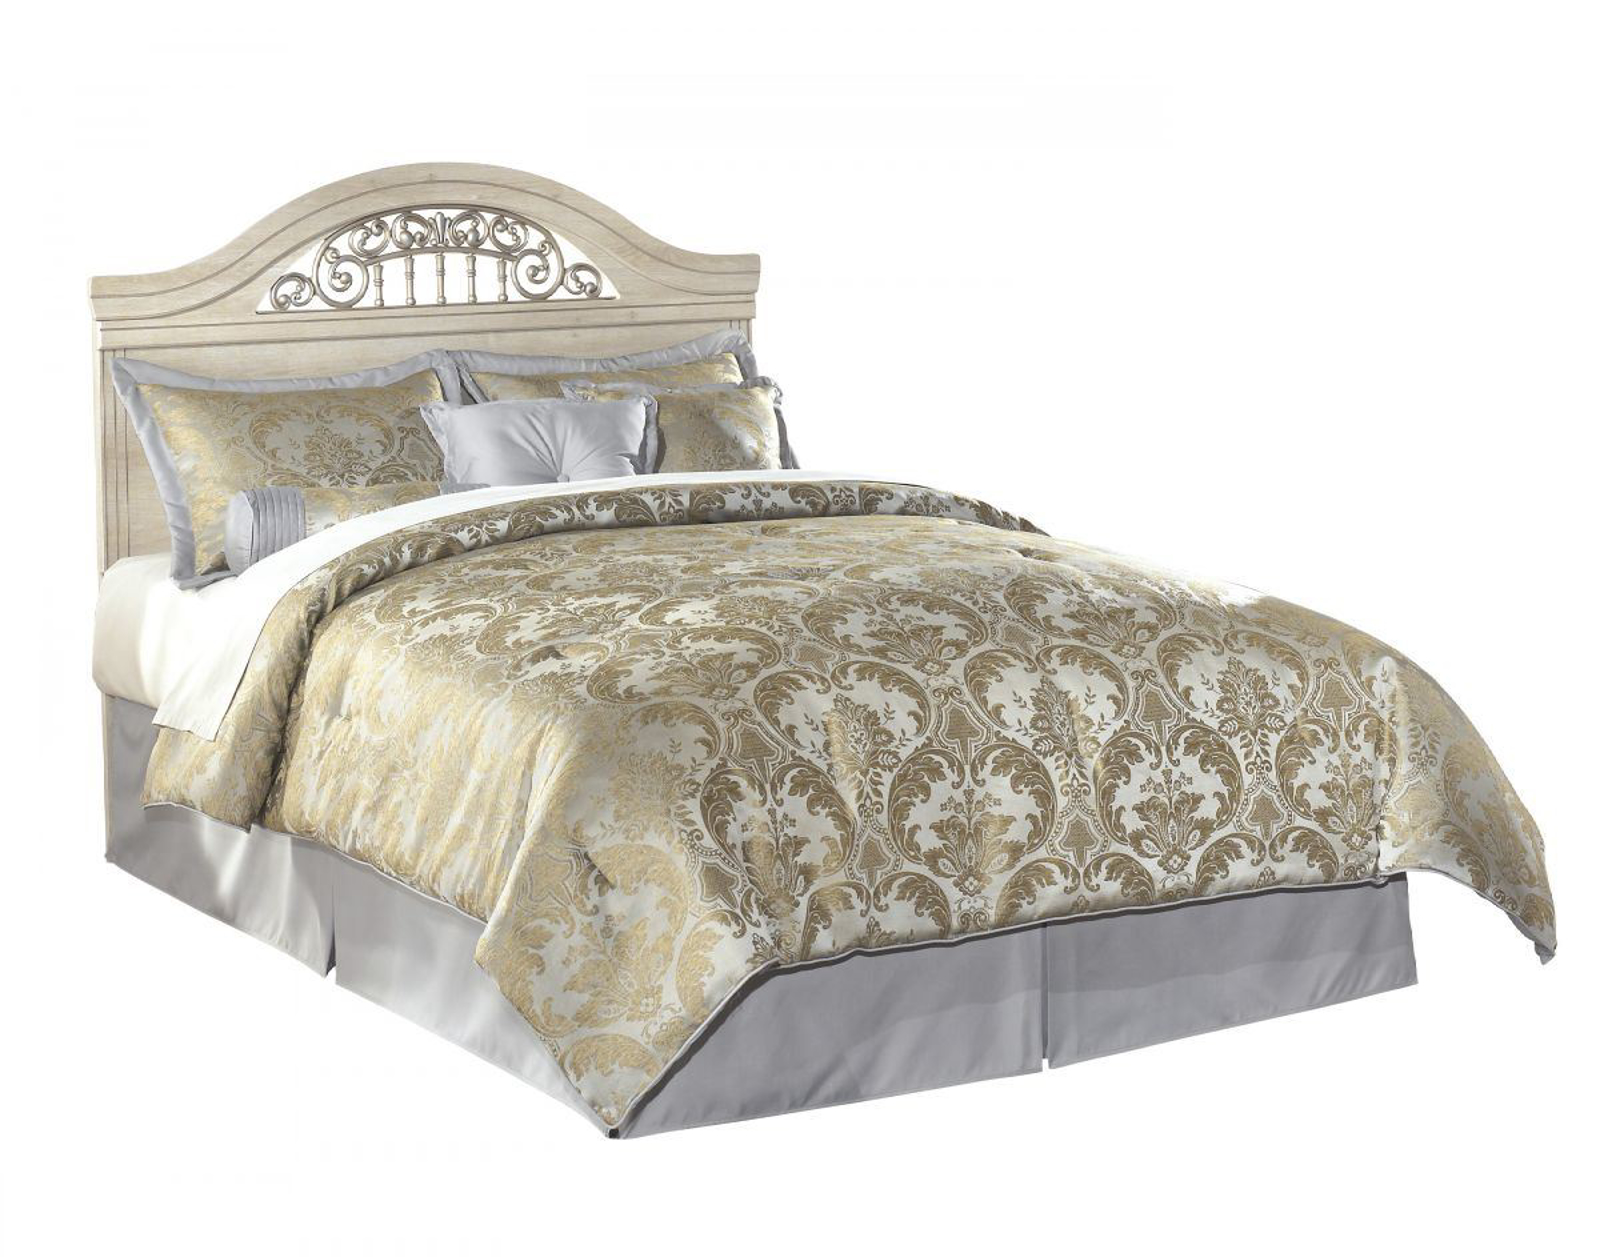 Picture of Catalina Full/Queen Size Headboard